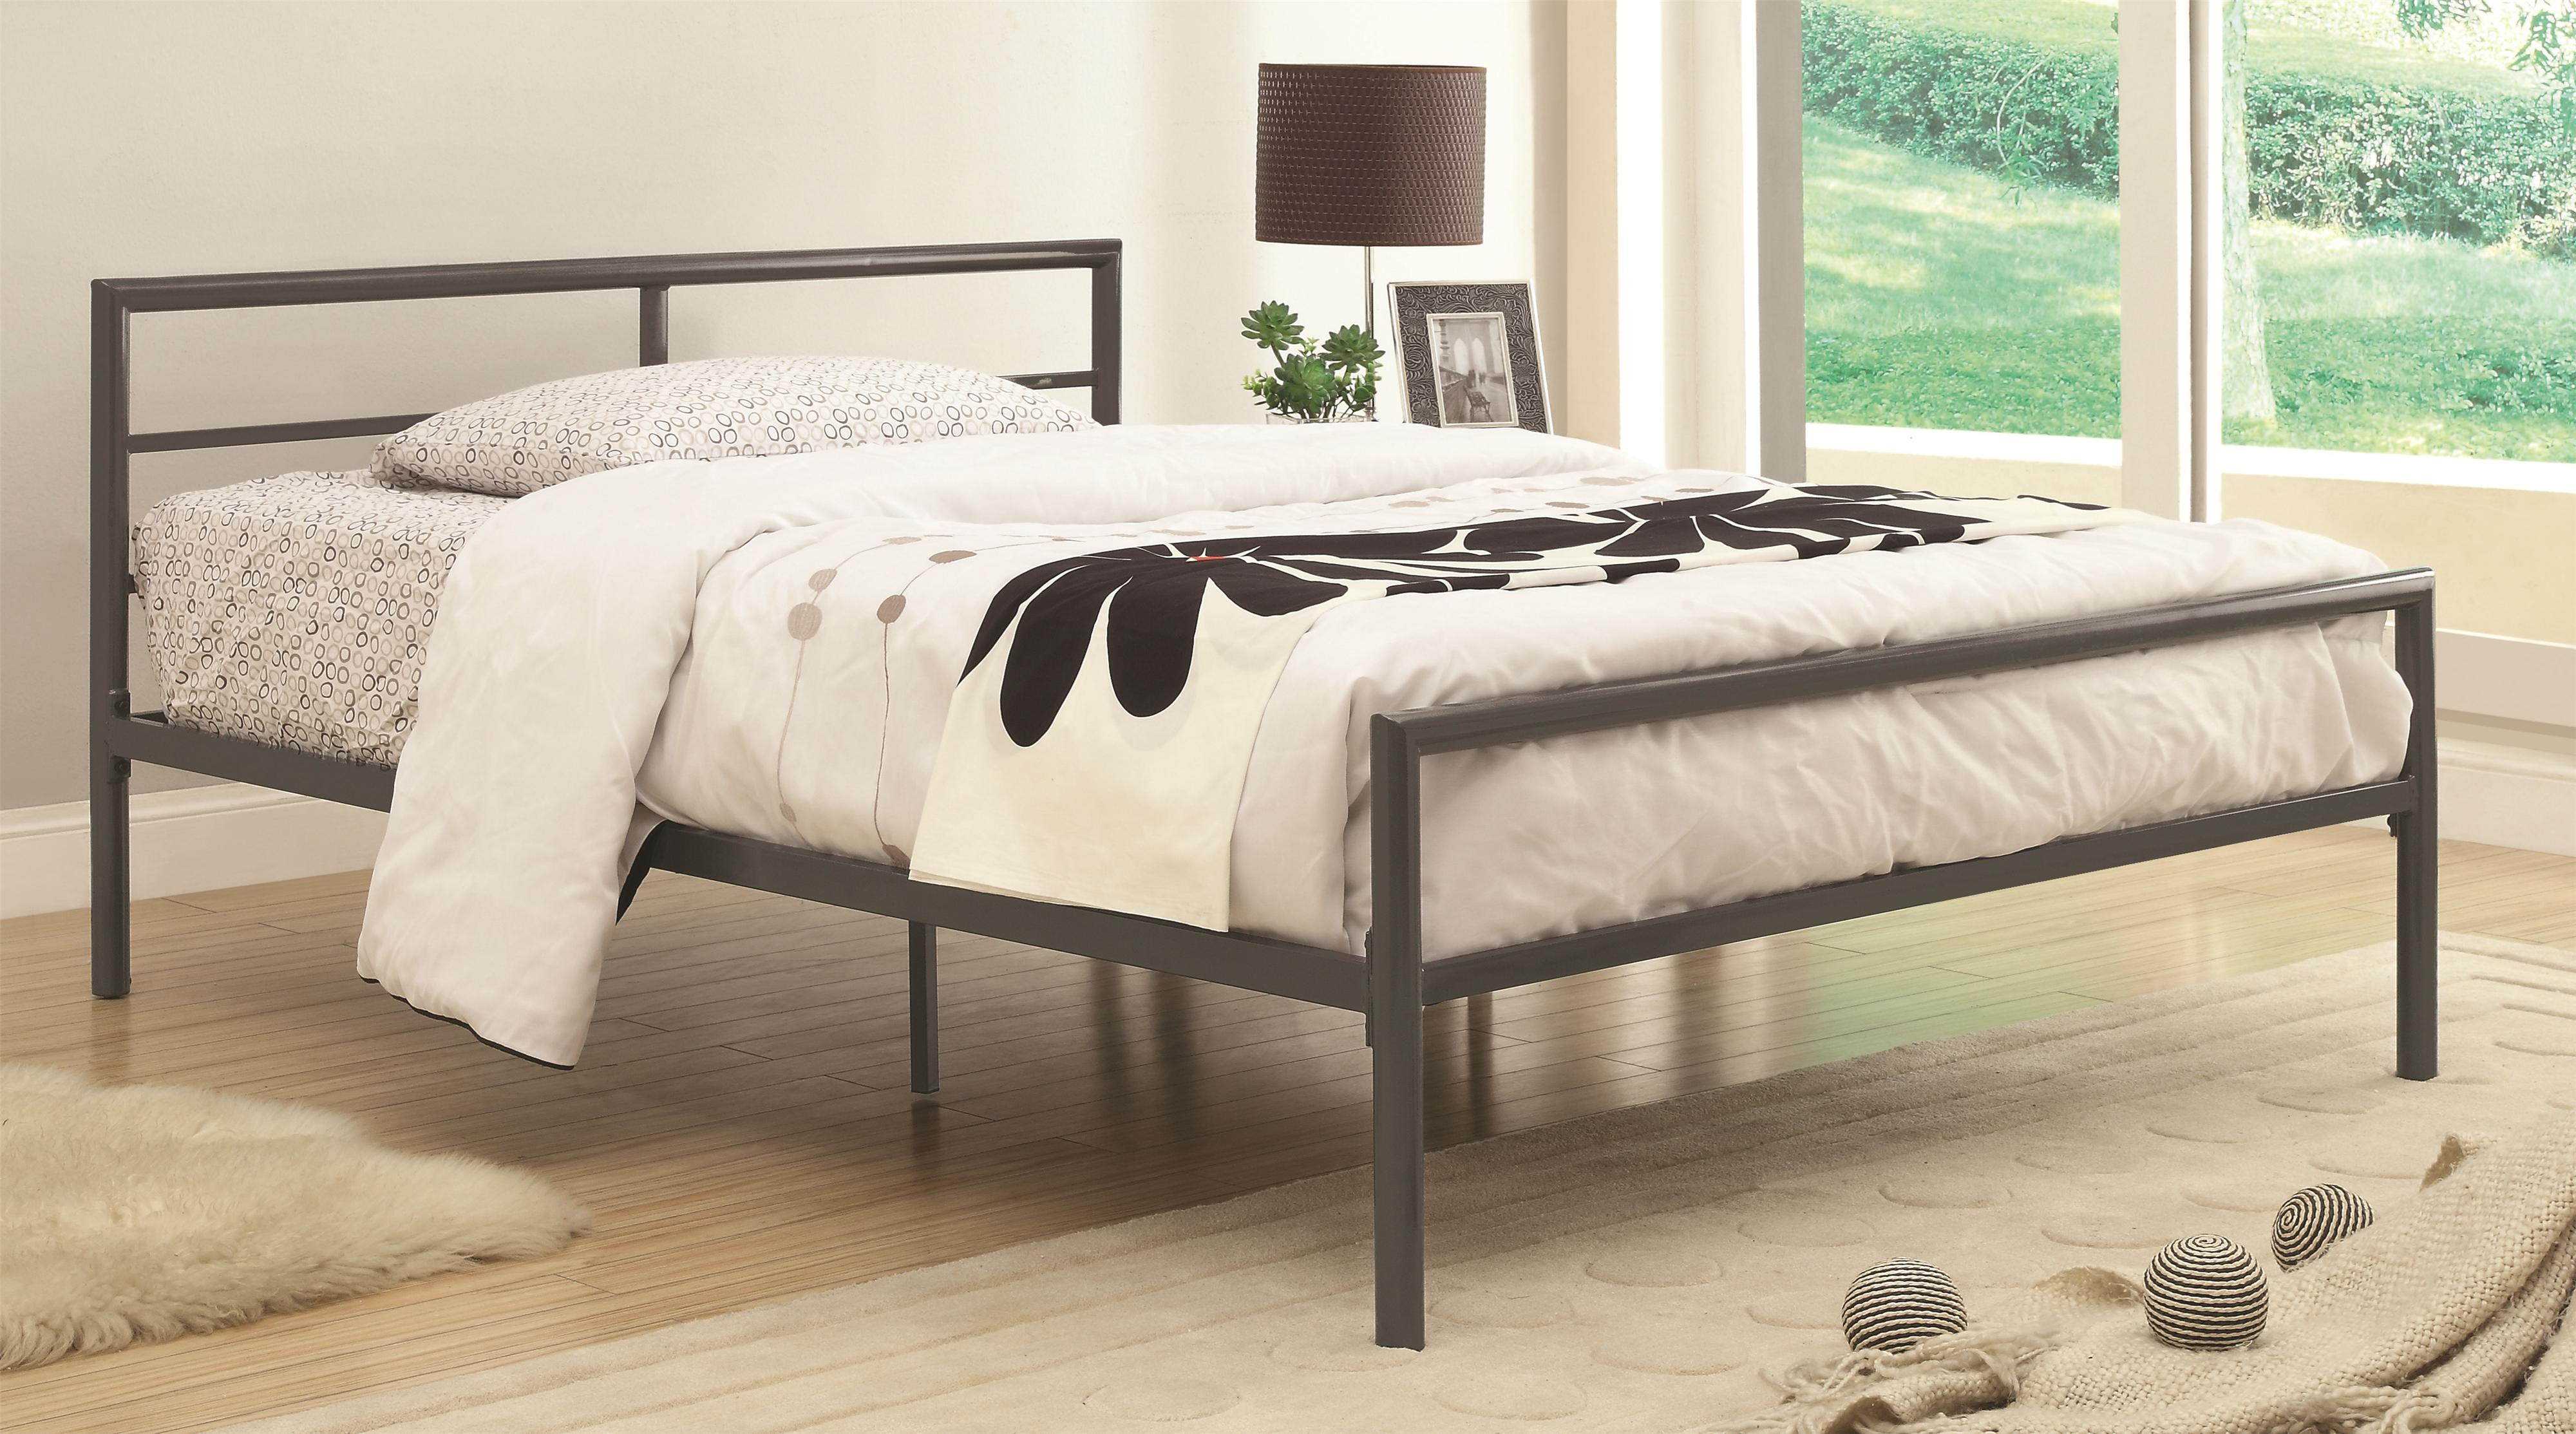 Metal Bed Headboards Iron Beds And Headboards Fisher Twin Bed With Sleek Lines By Coaster At Value City Furniture